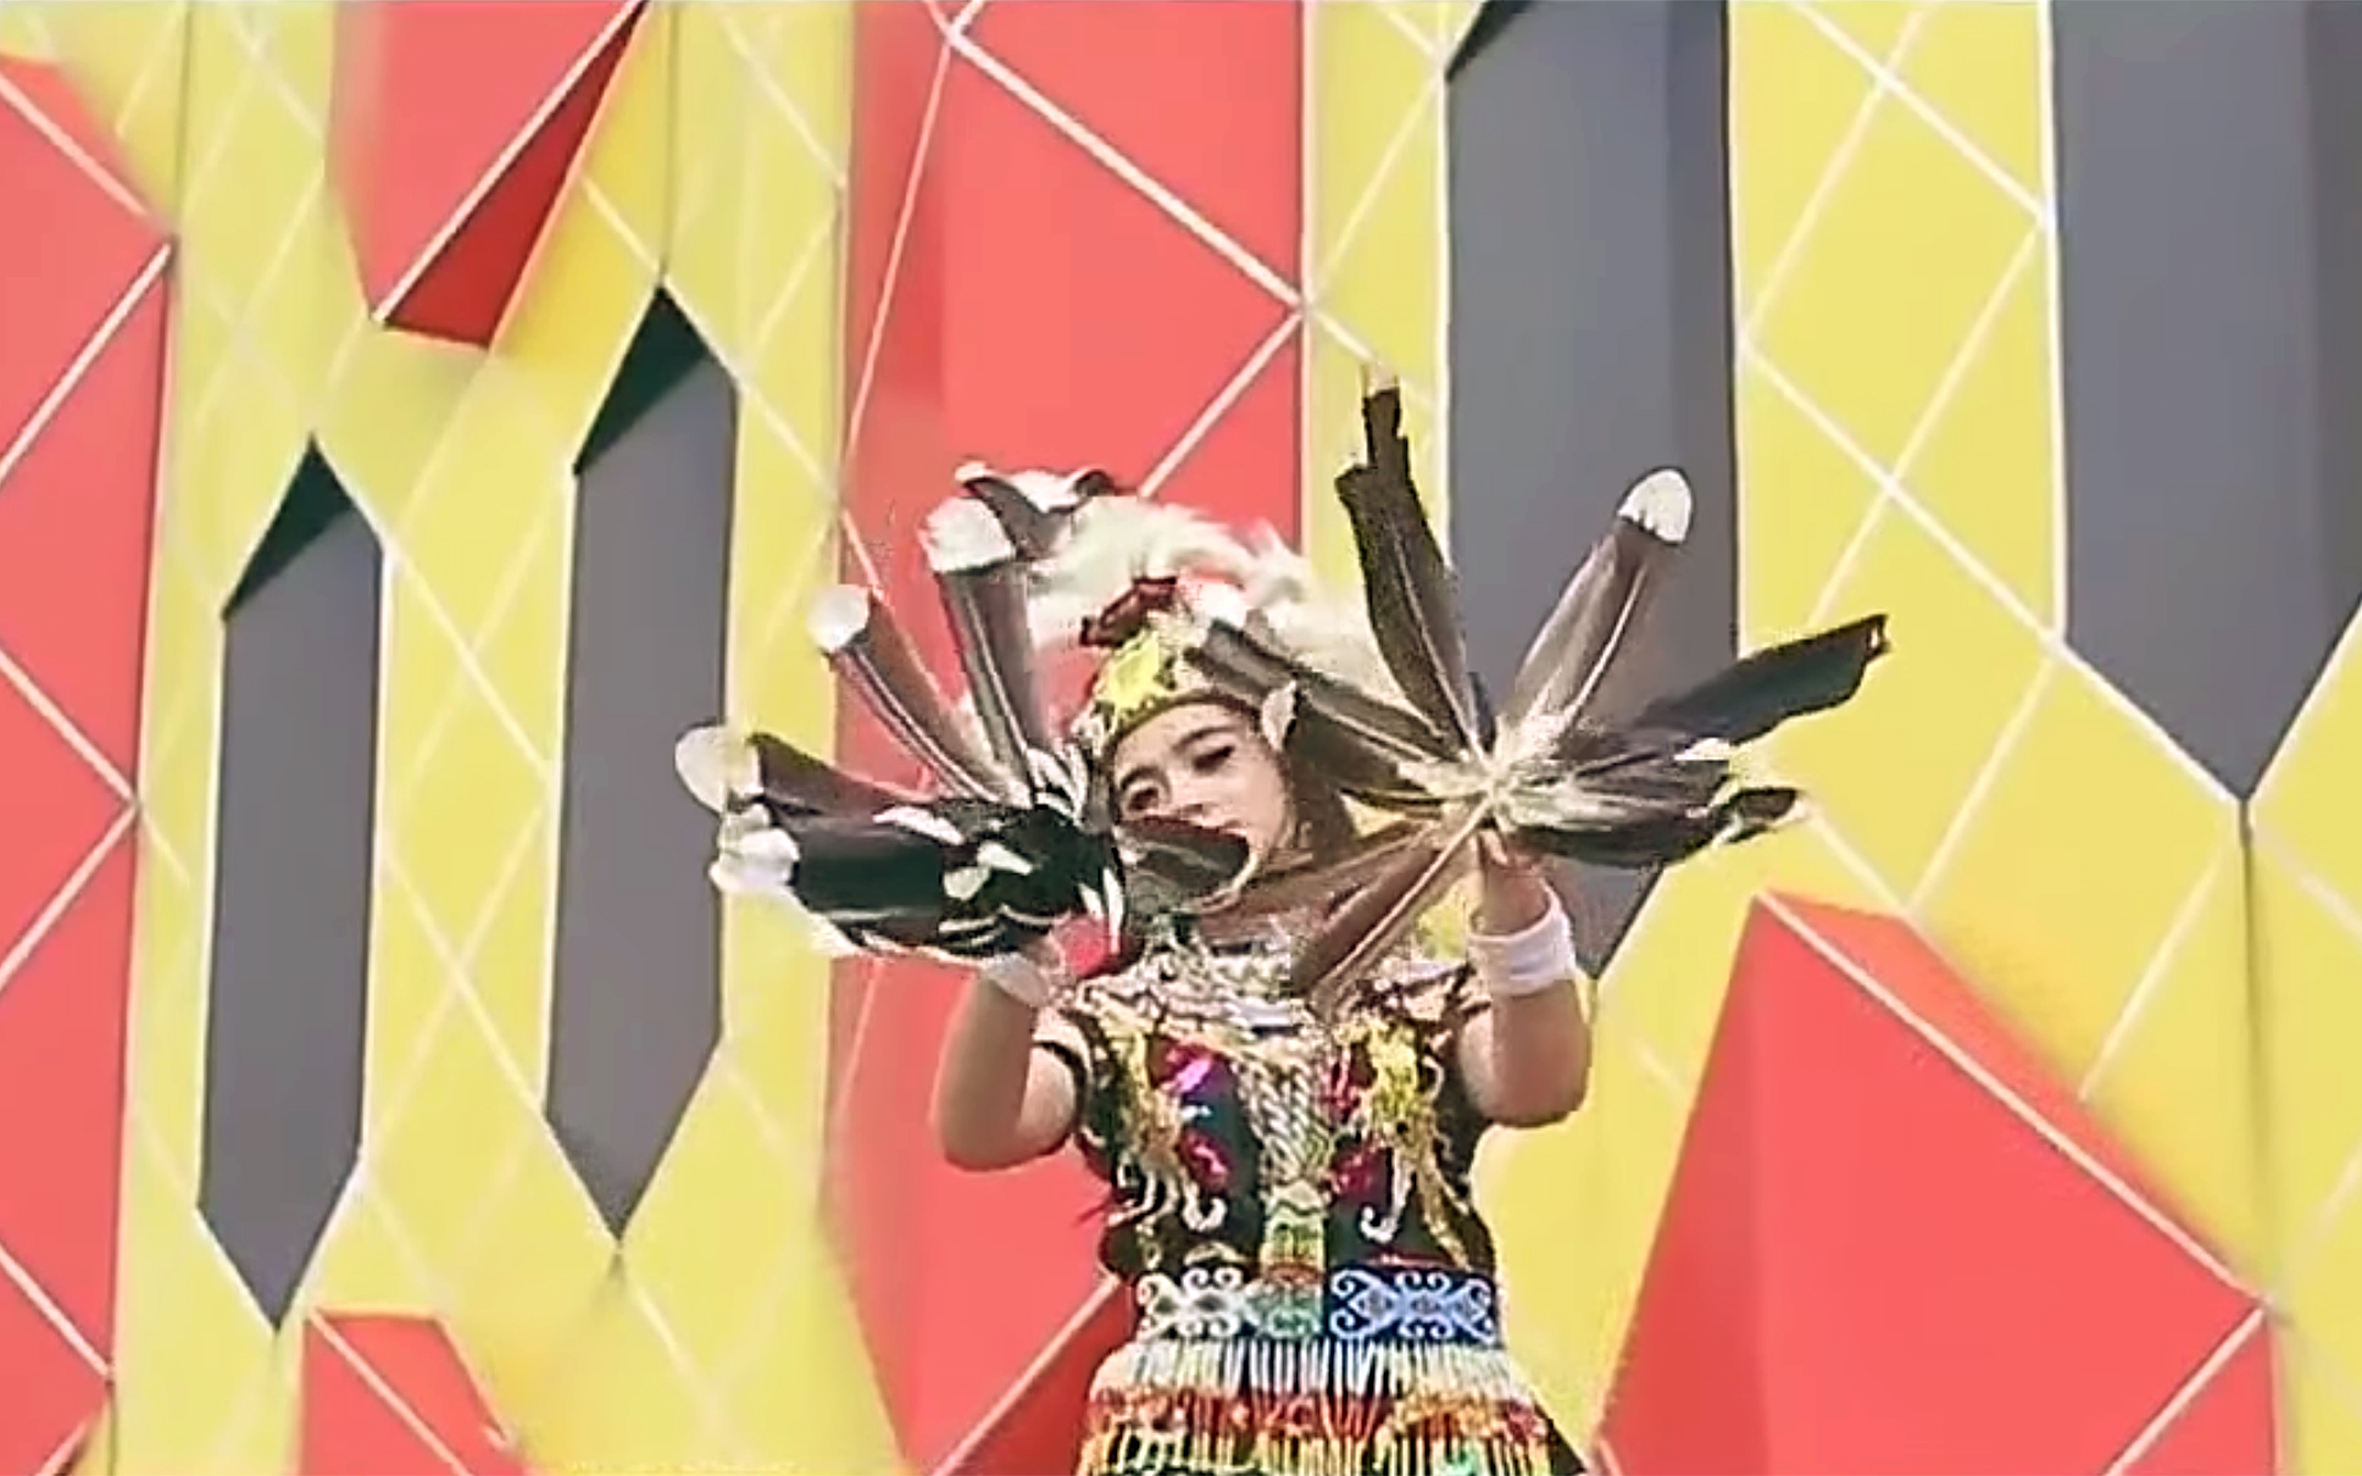 """223.Dayak Dance / Indonesia - Dayak Dance are various forms of dance performed by the Dayak people of Kalimantan (Indonesian Borneo). """"Tari Enggang"""" is inspired by the hornbill bird and dancers wear and hold hornbill feathers. Many other forms of Dayak dance are inspired by birds and feature sweeping and floating hand movements."""